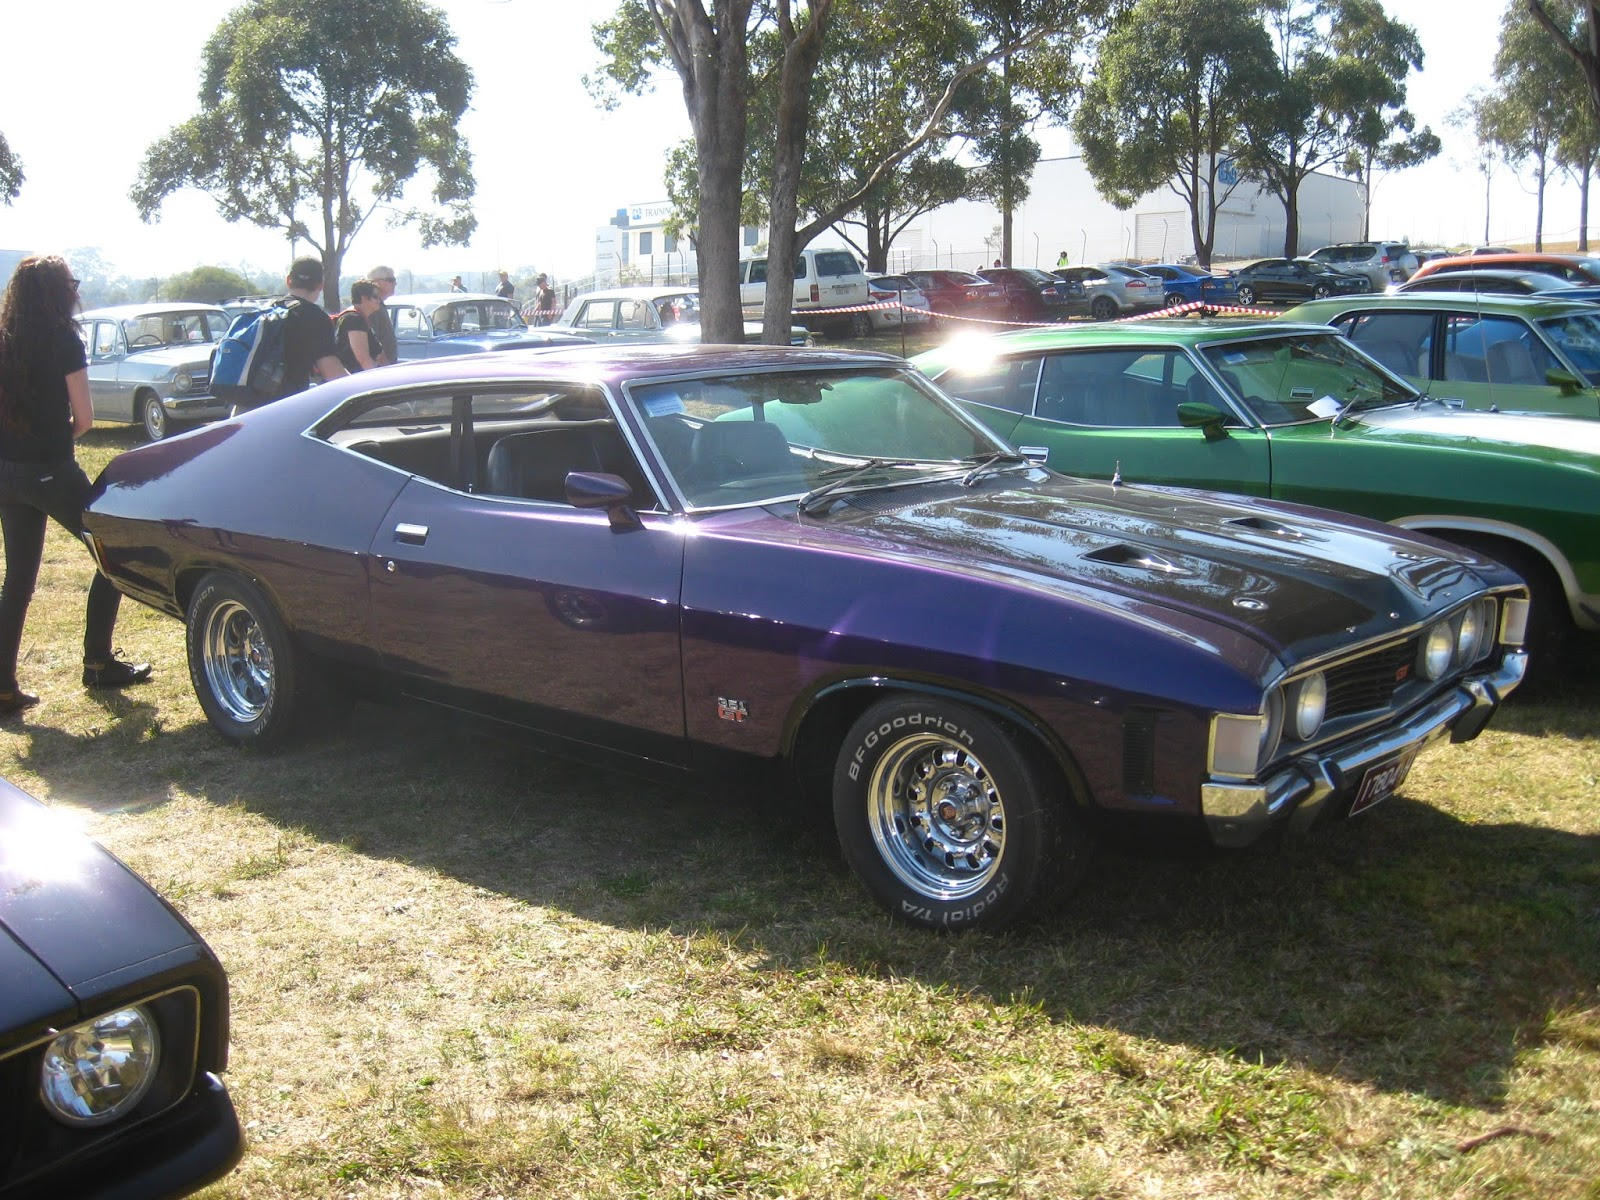 Aussie Old Parked Cars: 1972 Ford XA Falcon GT 351 Hardtop  Aussie Old Park...